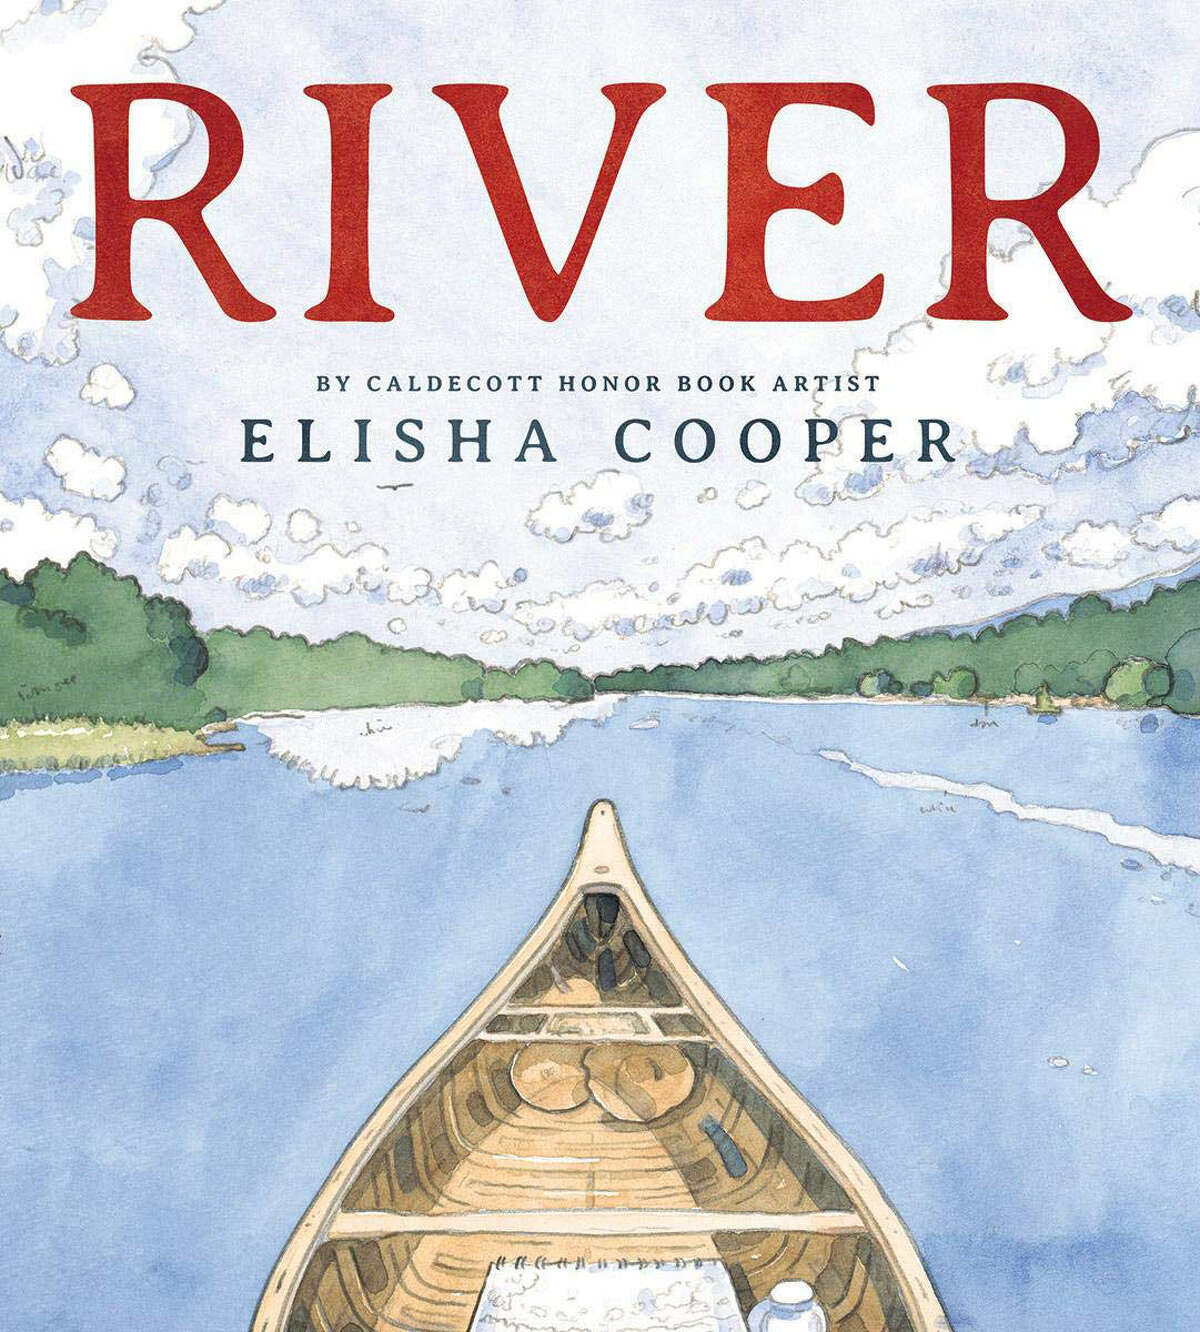 Elisha Cooper, The Open Door Bookstore & Gift Gallery, 128 Jay St., Schenectady. 1 p.m. Saturday. Free. 518-346-2719 or opendoor-bookstore.com. The author signs his new childen's book